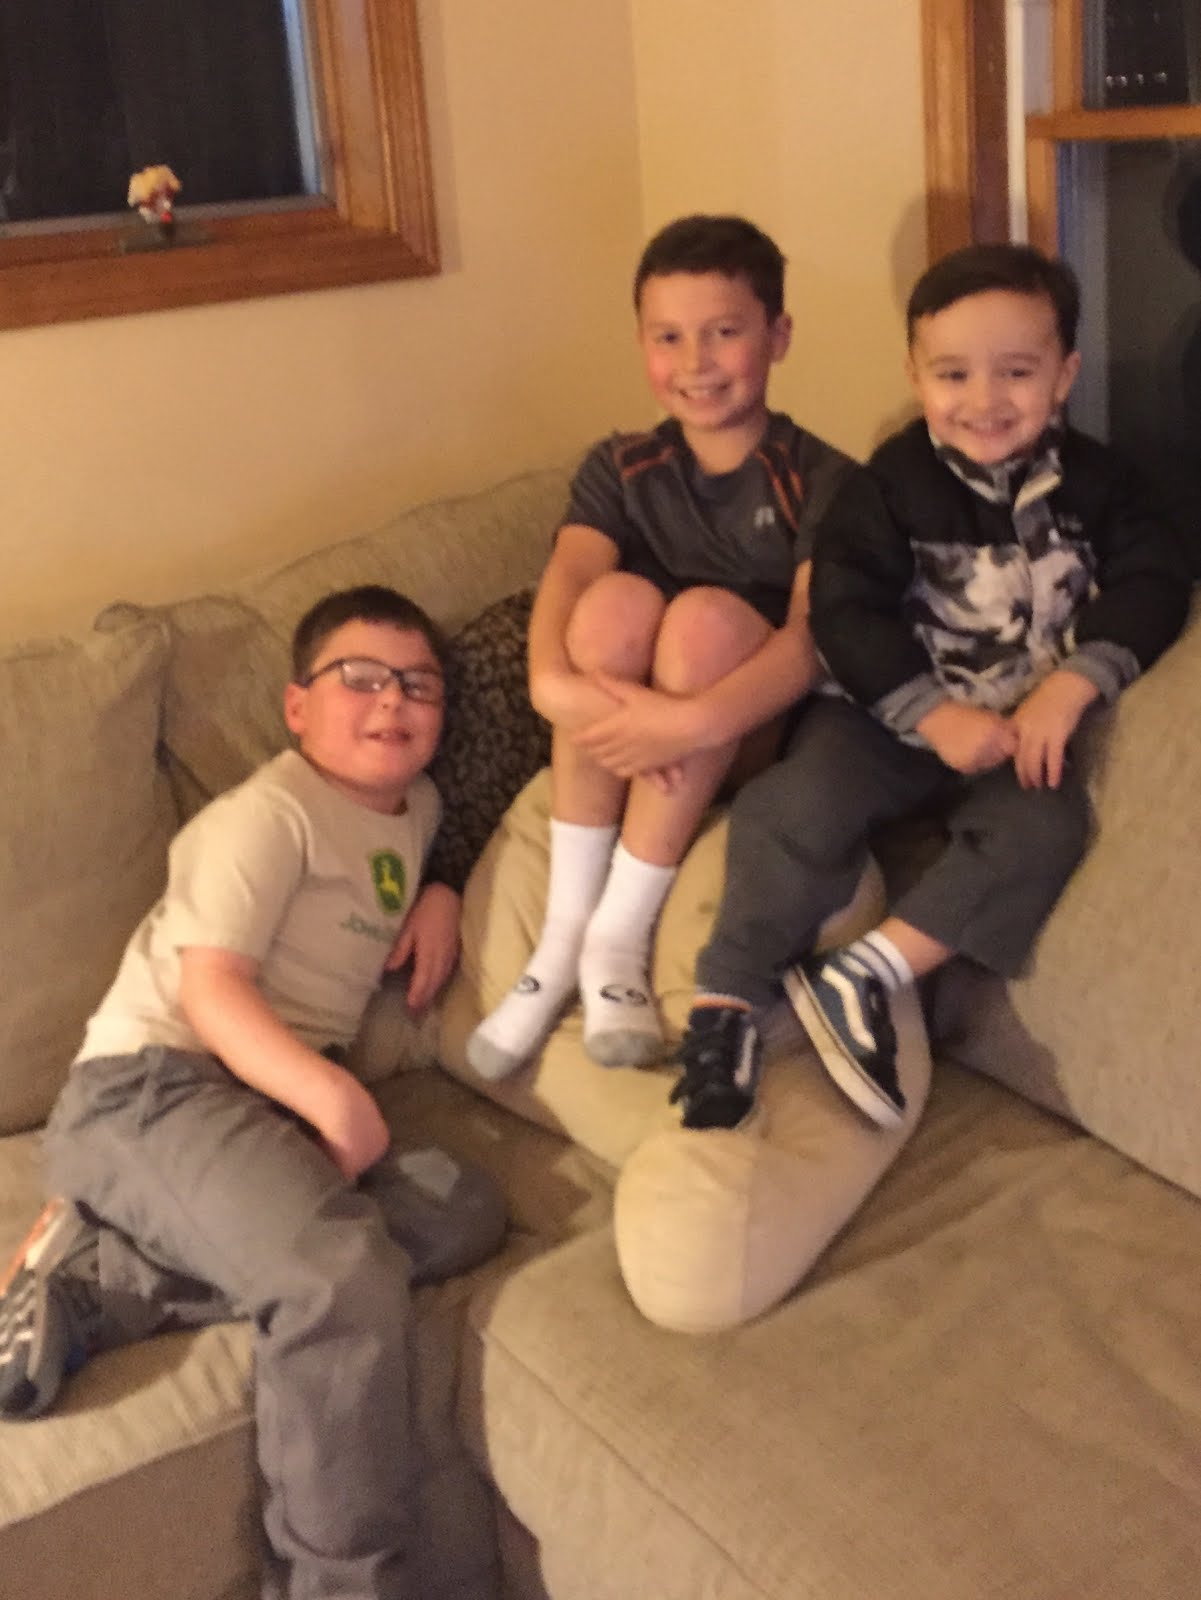 Jacob, Matthew, and Aiden